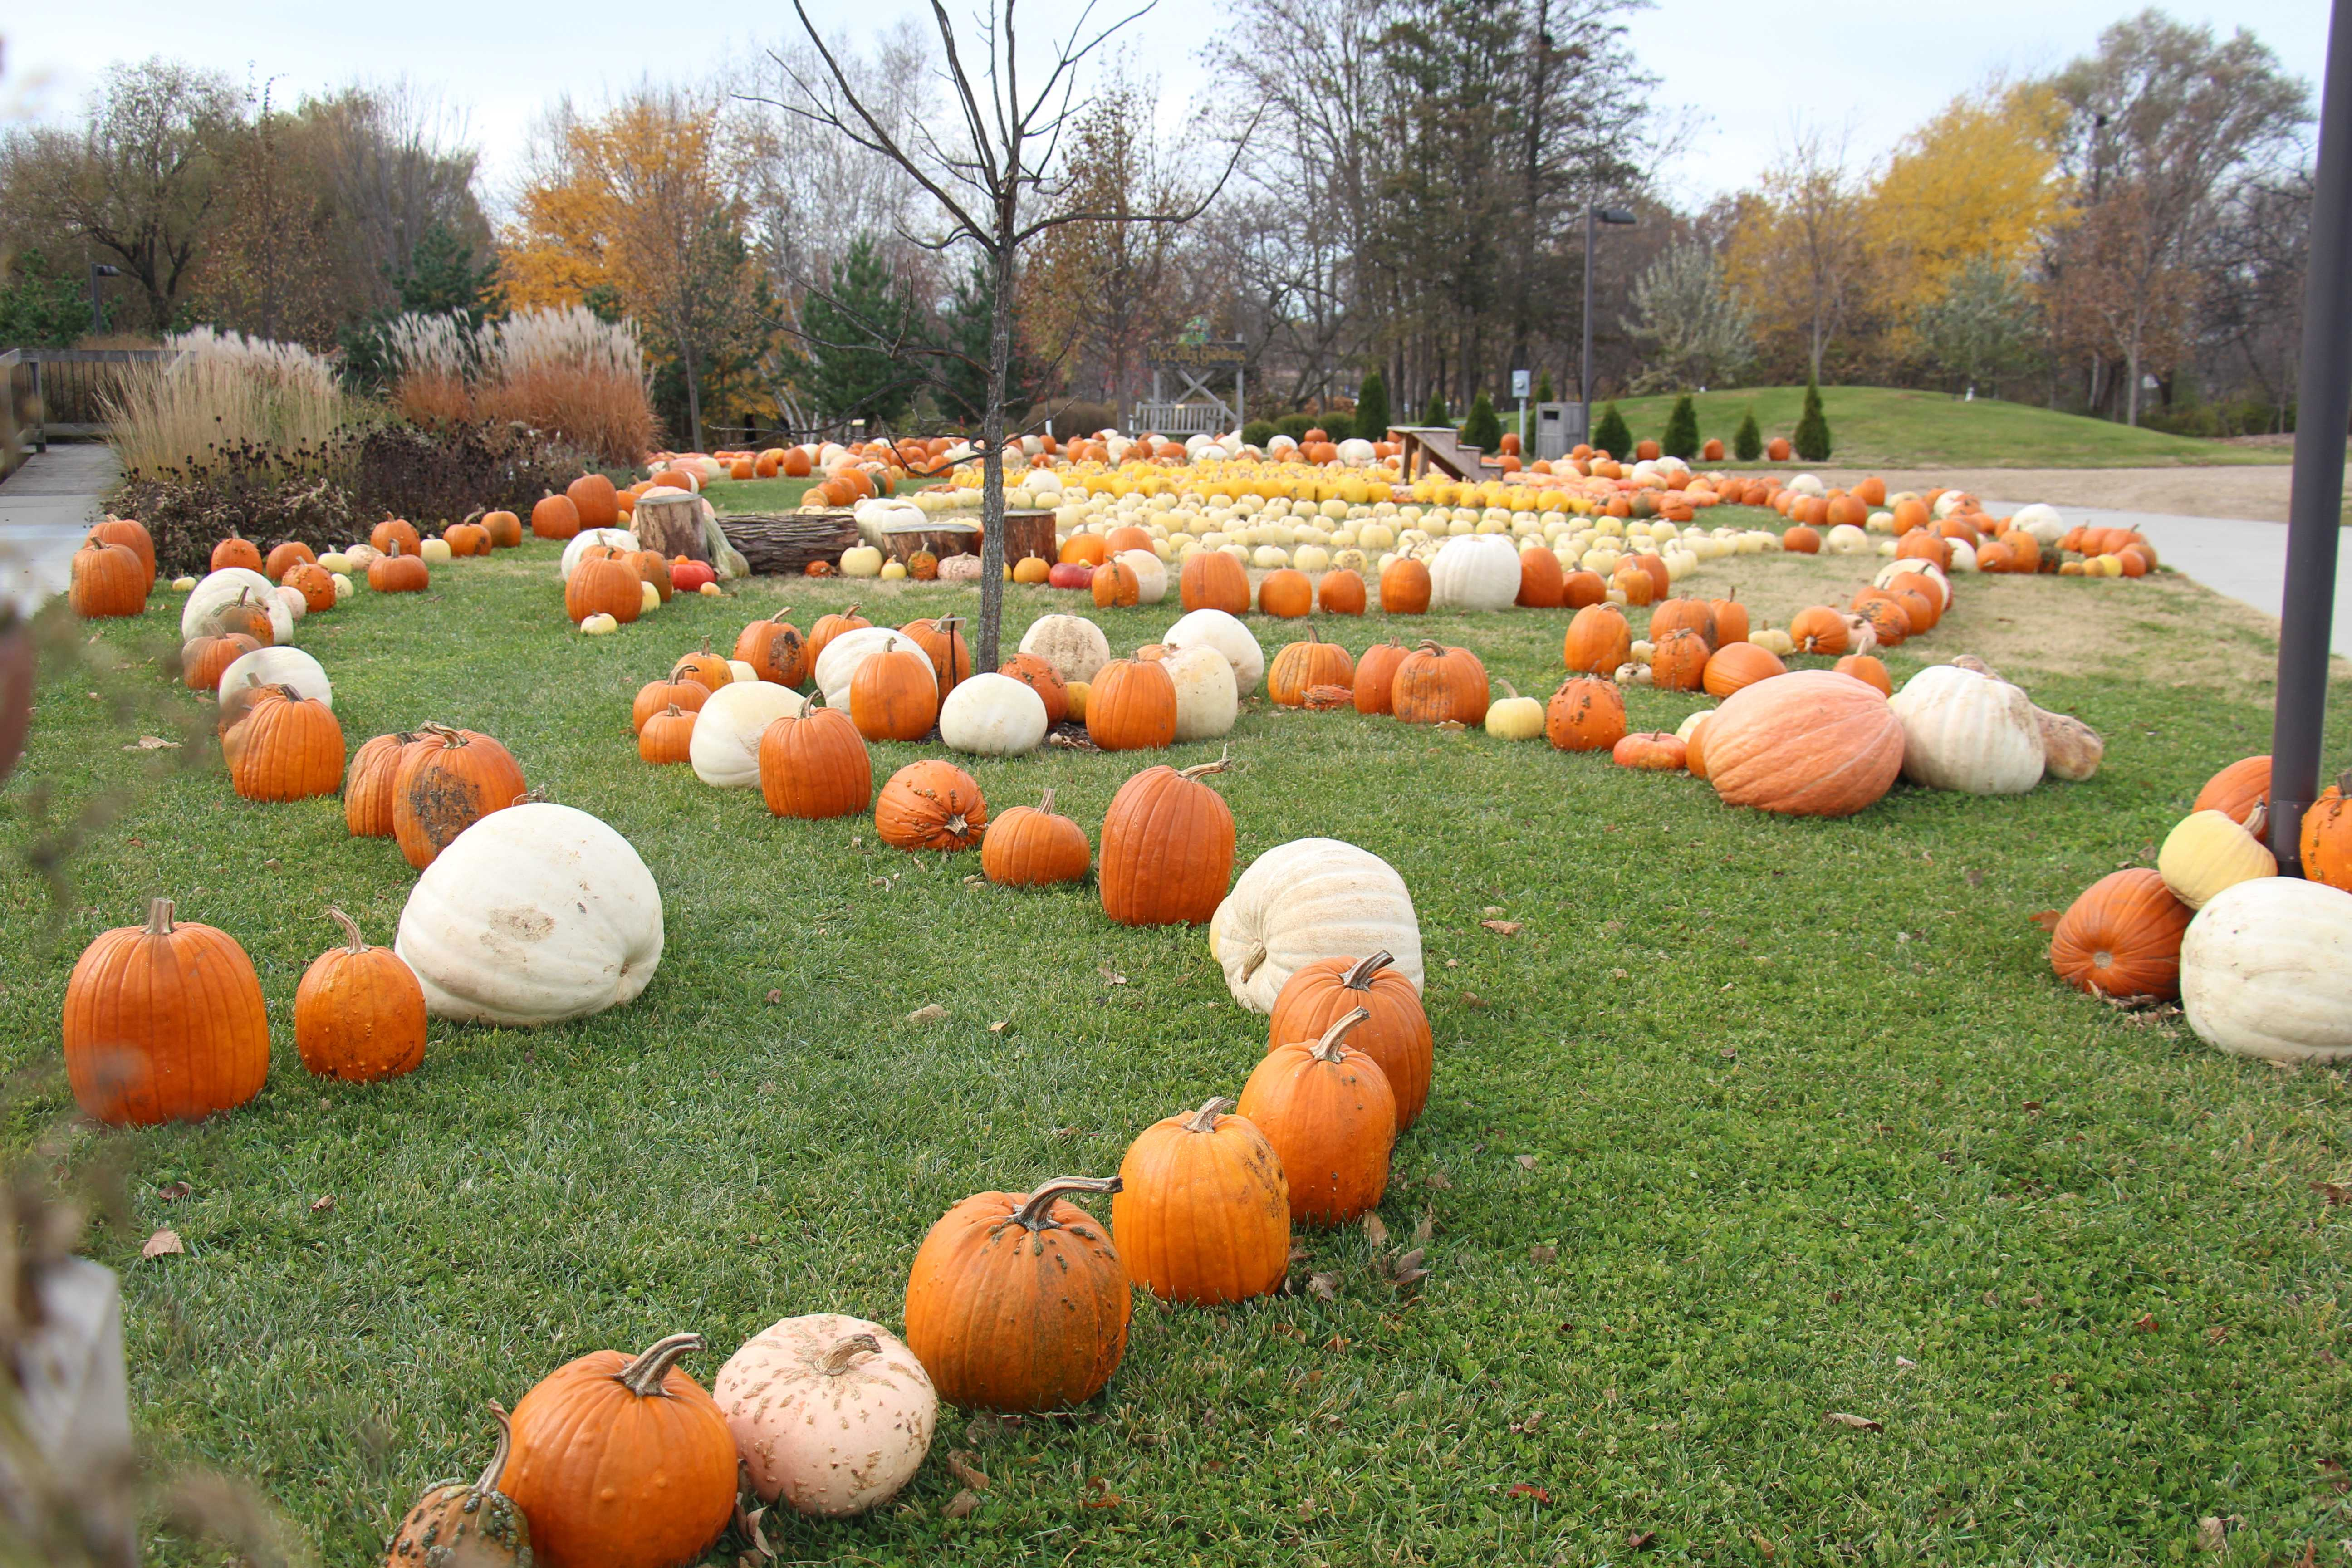 SUBMITTED Some of the 1,900 pumpkins from the Local Foods Education Center on display at McCrory Gardens.